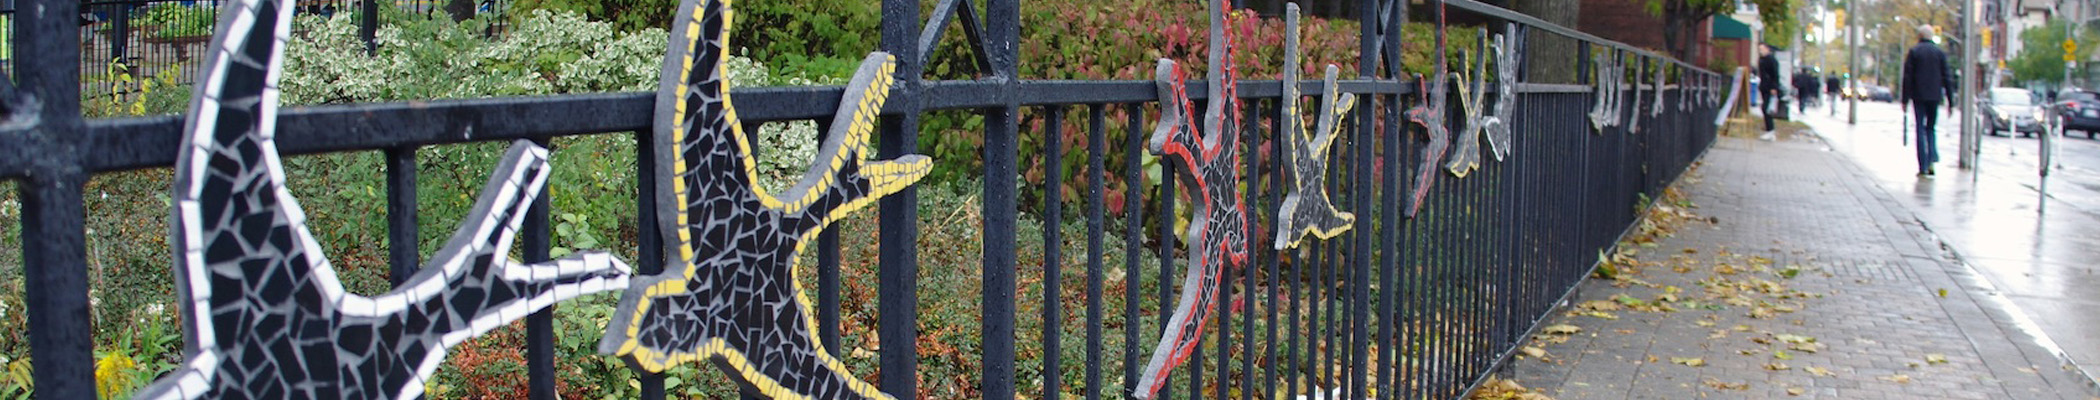 Tiled mosaic birds line against a wrought iron fence in Cabbagetown